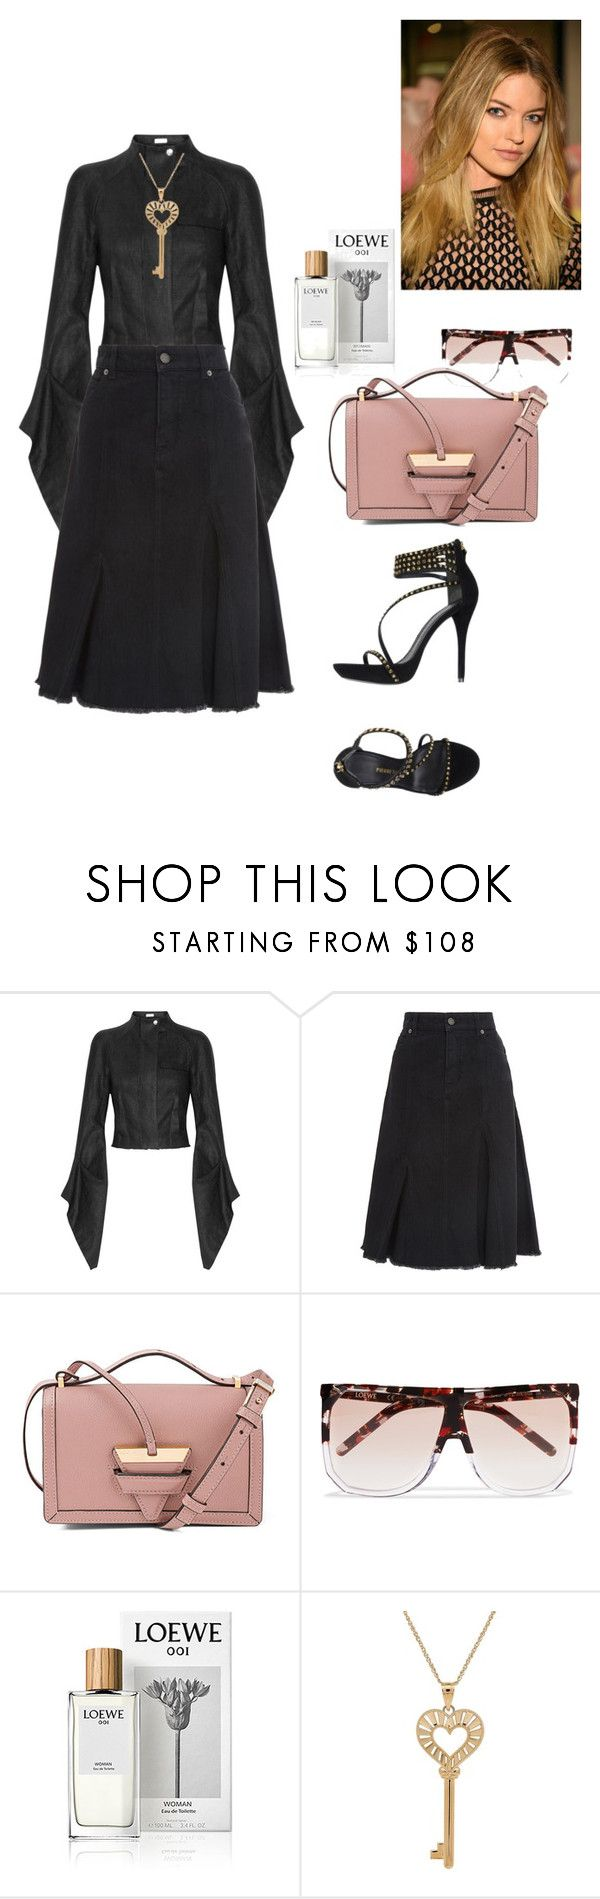 """""""05-12-2017-01"""" by francislu-brito ❤ liked on Polyvore featuring Loewe, Lord & Taylor, Victoria's Secret and Pierre Balmain"""